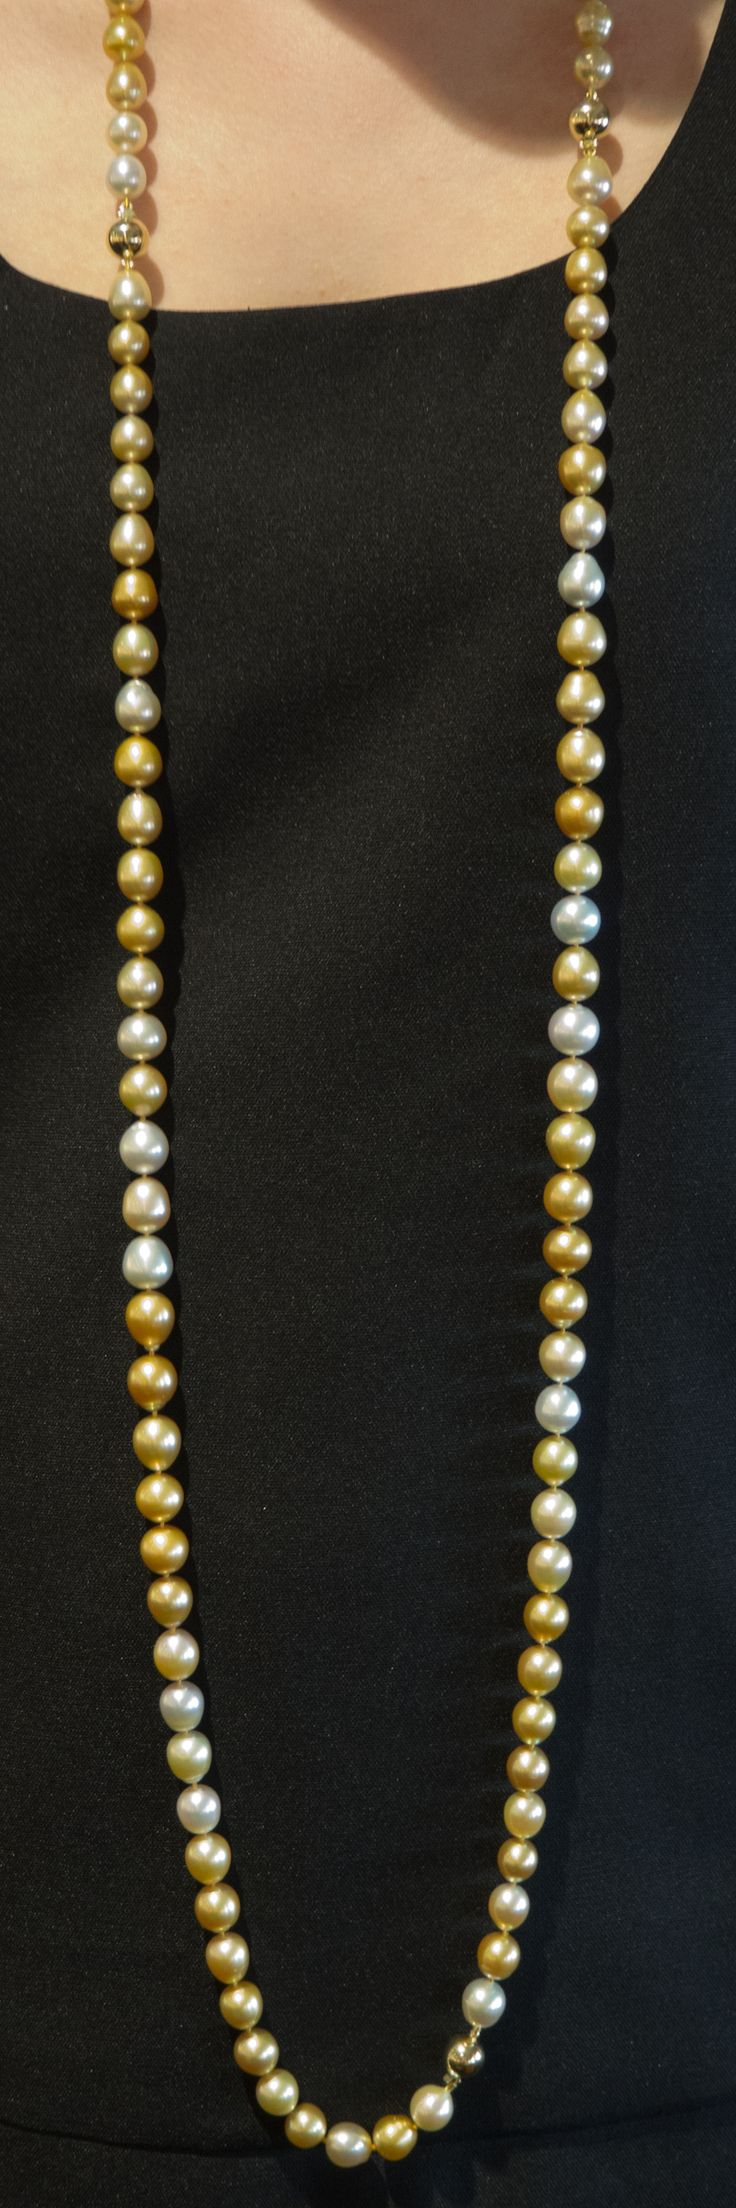 Introducing our beautiful Jewelmer Golden South Sea Pearl rope length strand. Wear as a single strand or detach into bracelets and necklaces. www.rutherford.com.au